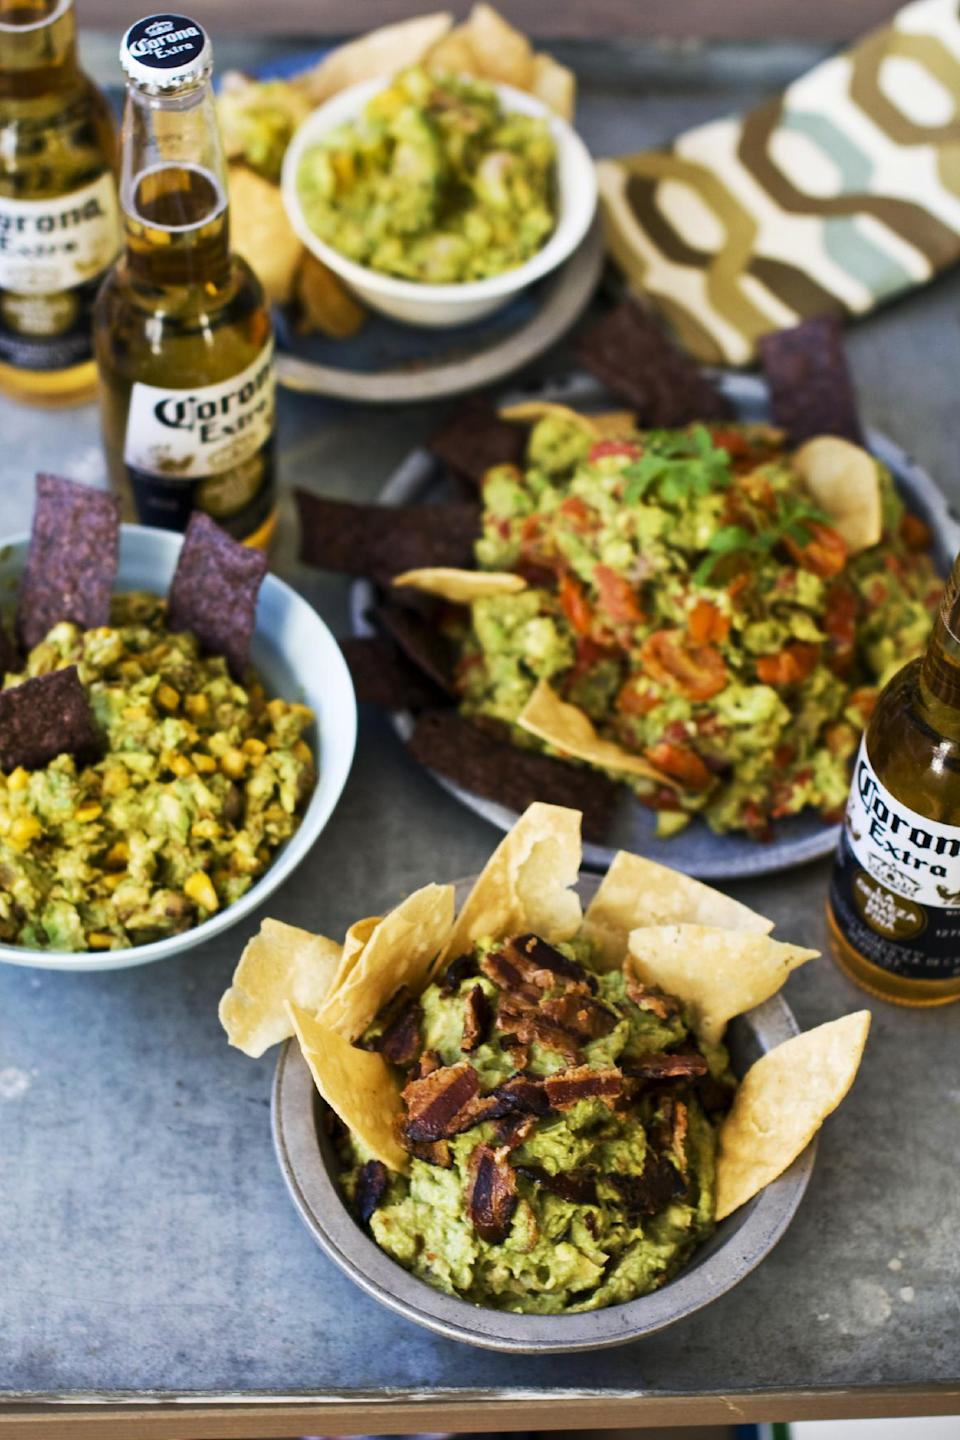 In this image taken on January 7, 2013, sweet heat bacon guacamole, front, chipotle corn guacamole, middle left, shrimp and mango guacamole, top, and roasted fresh salsa guacamole, middle right, are shown served in bowls in Concord, N.H.  (AP Photo/Matthew Mead)